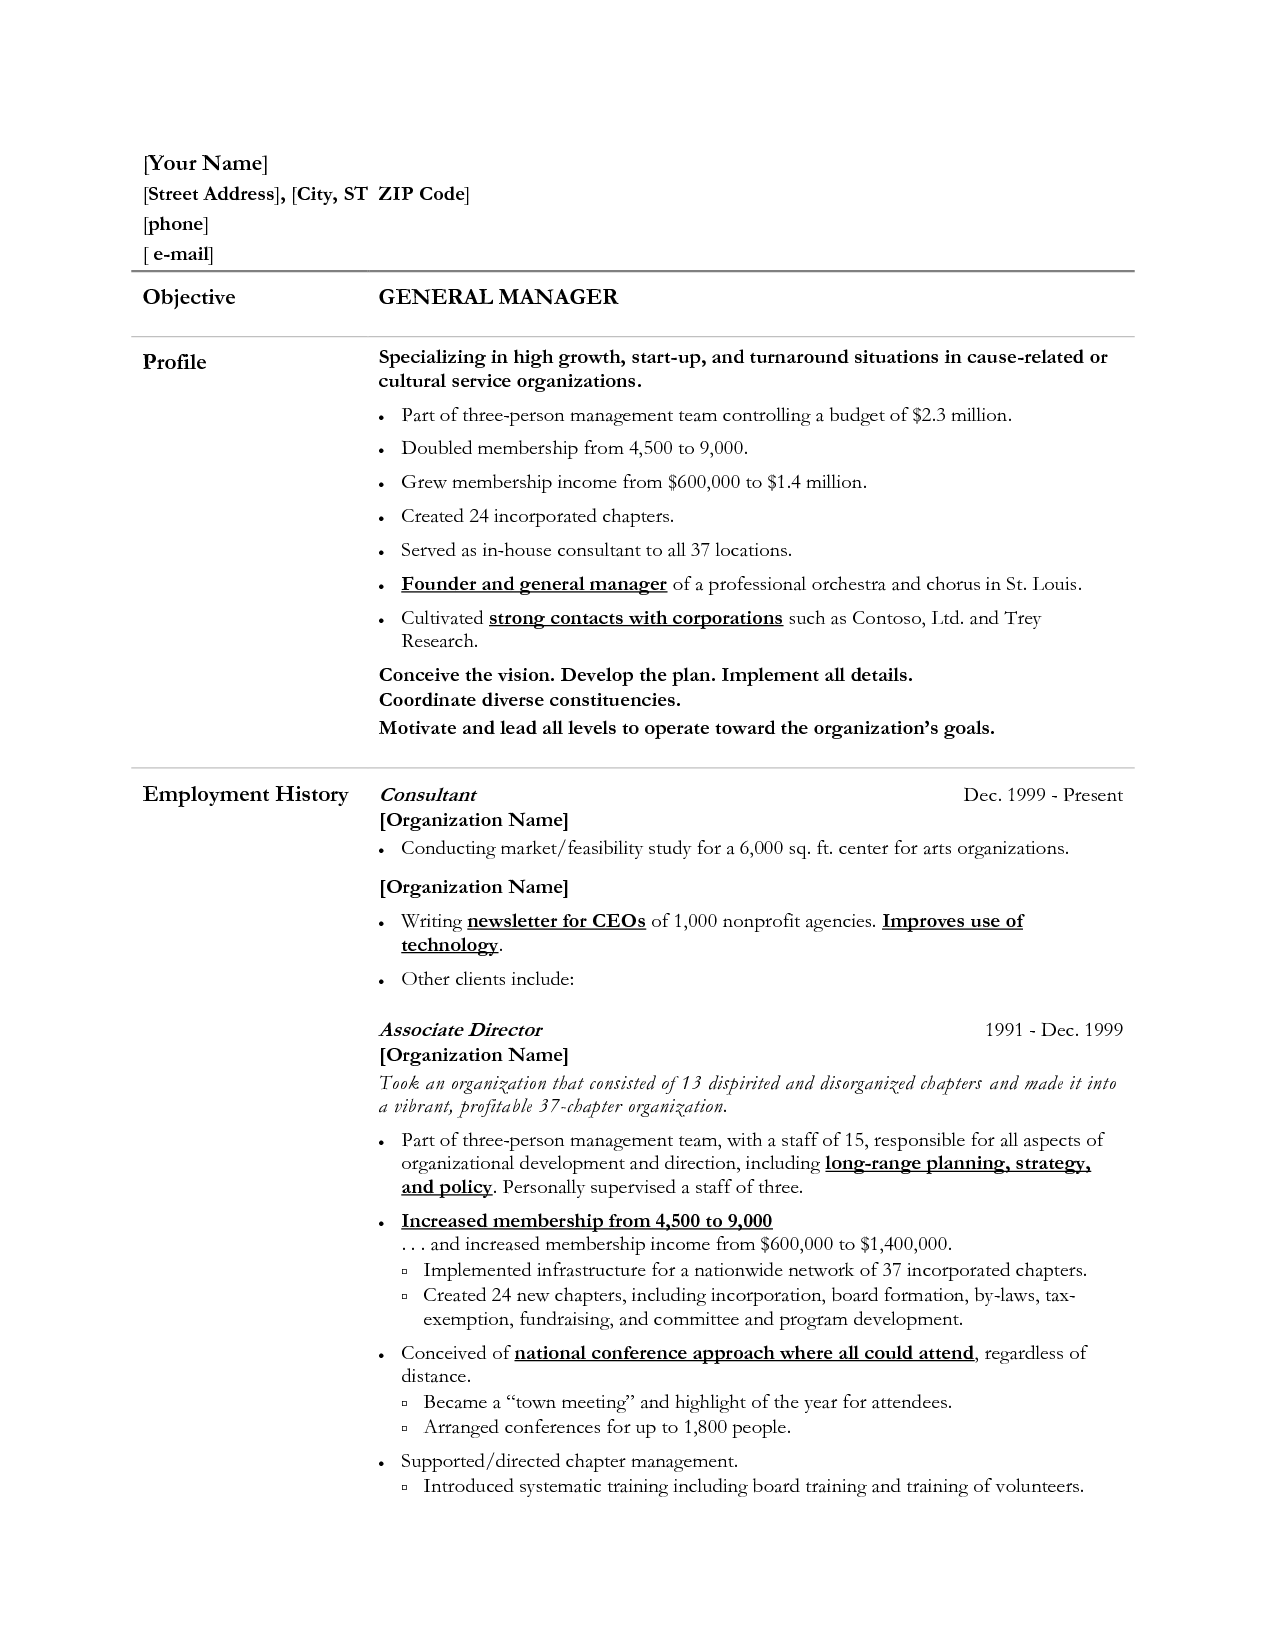 General Manager Resume Example   Http://www.resumecareer.info/general